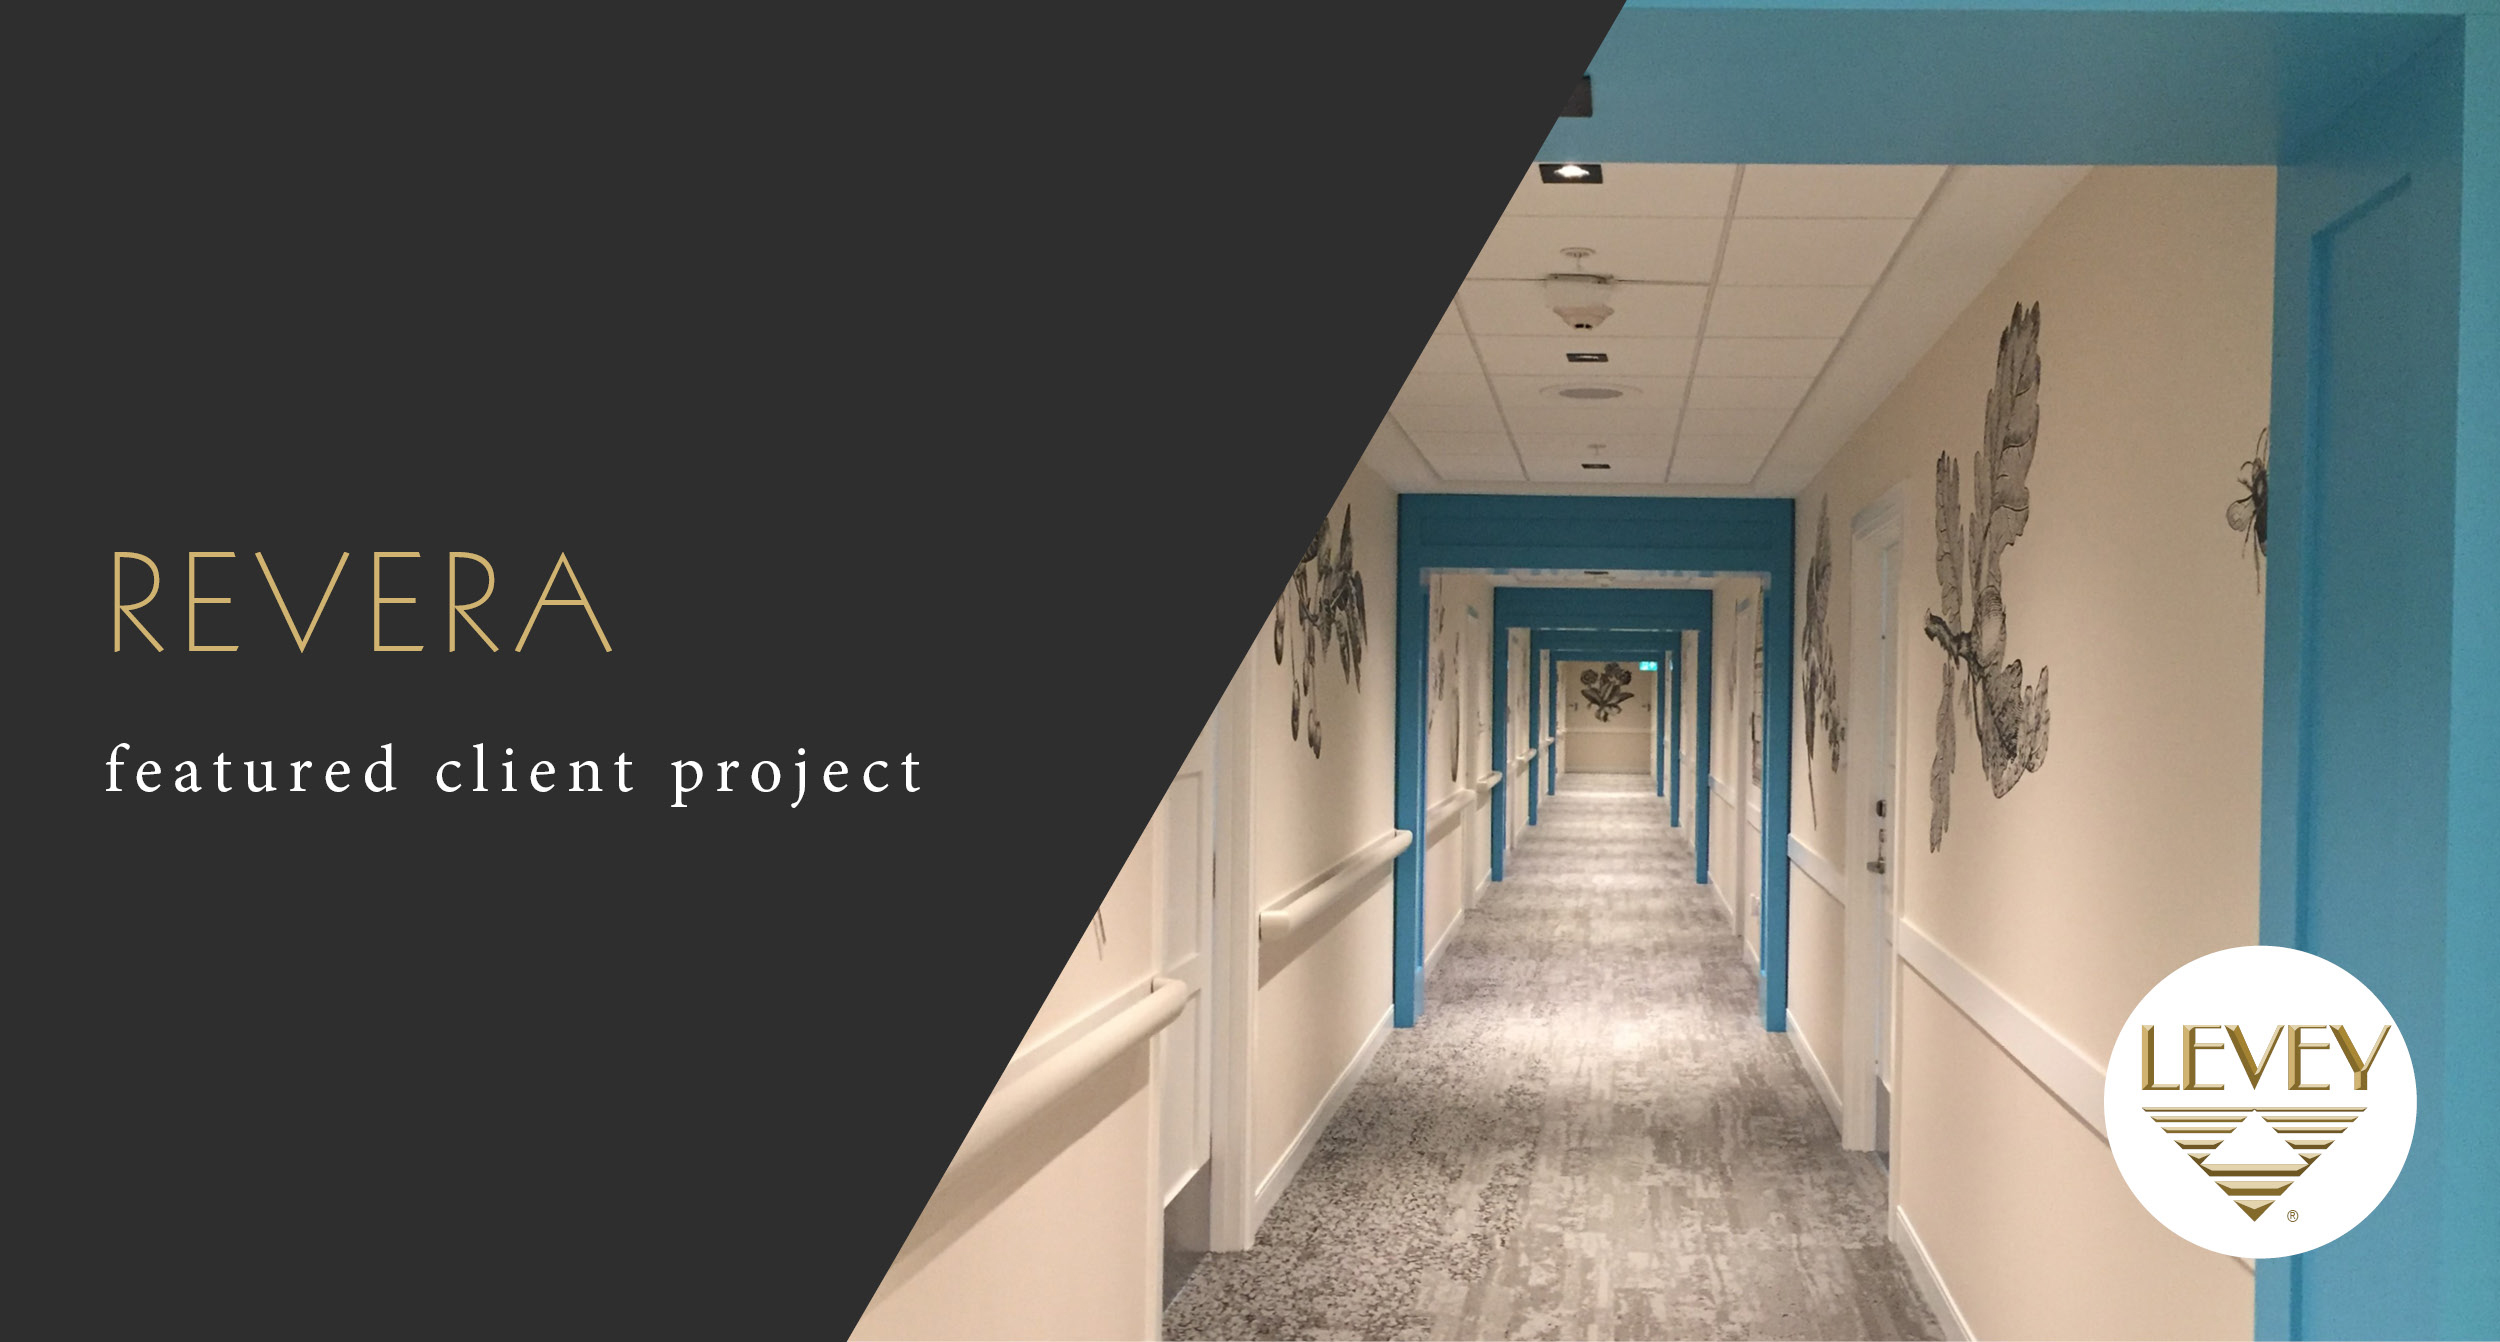 Revera, featured Client Project, Hallway Featuring LEVEYArt Custom Digital Wallcovering, LEVEY Commercial Wallcoverings and Architectural Finishes